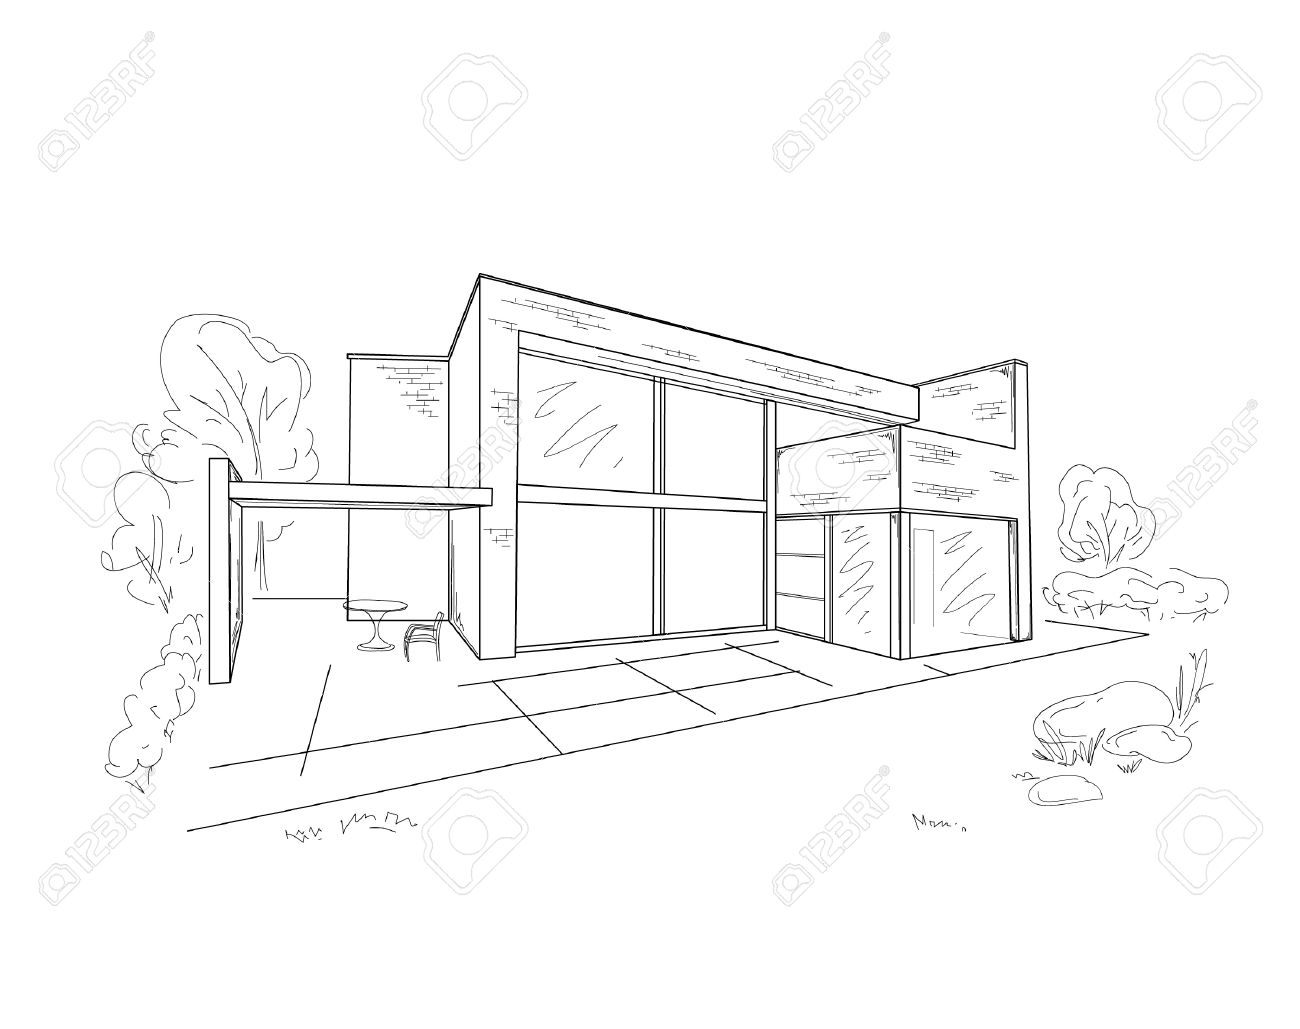 Vector Sketch Of Modern House oyalty Free liparts, Vectors, nd ... - ^